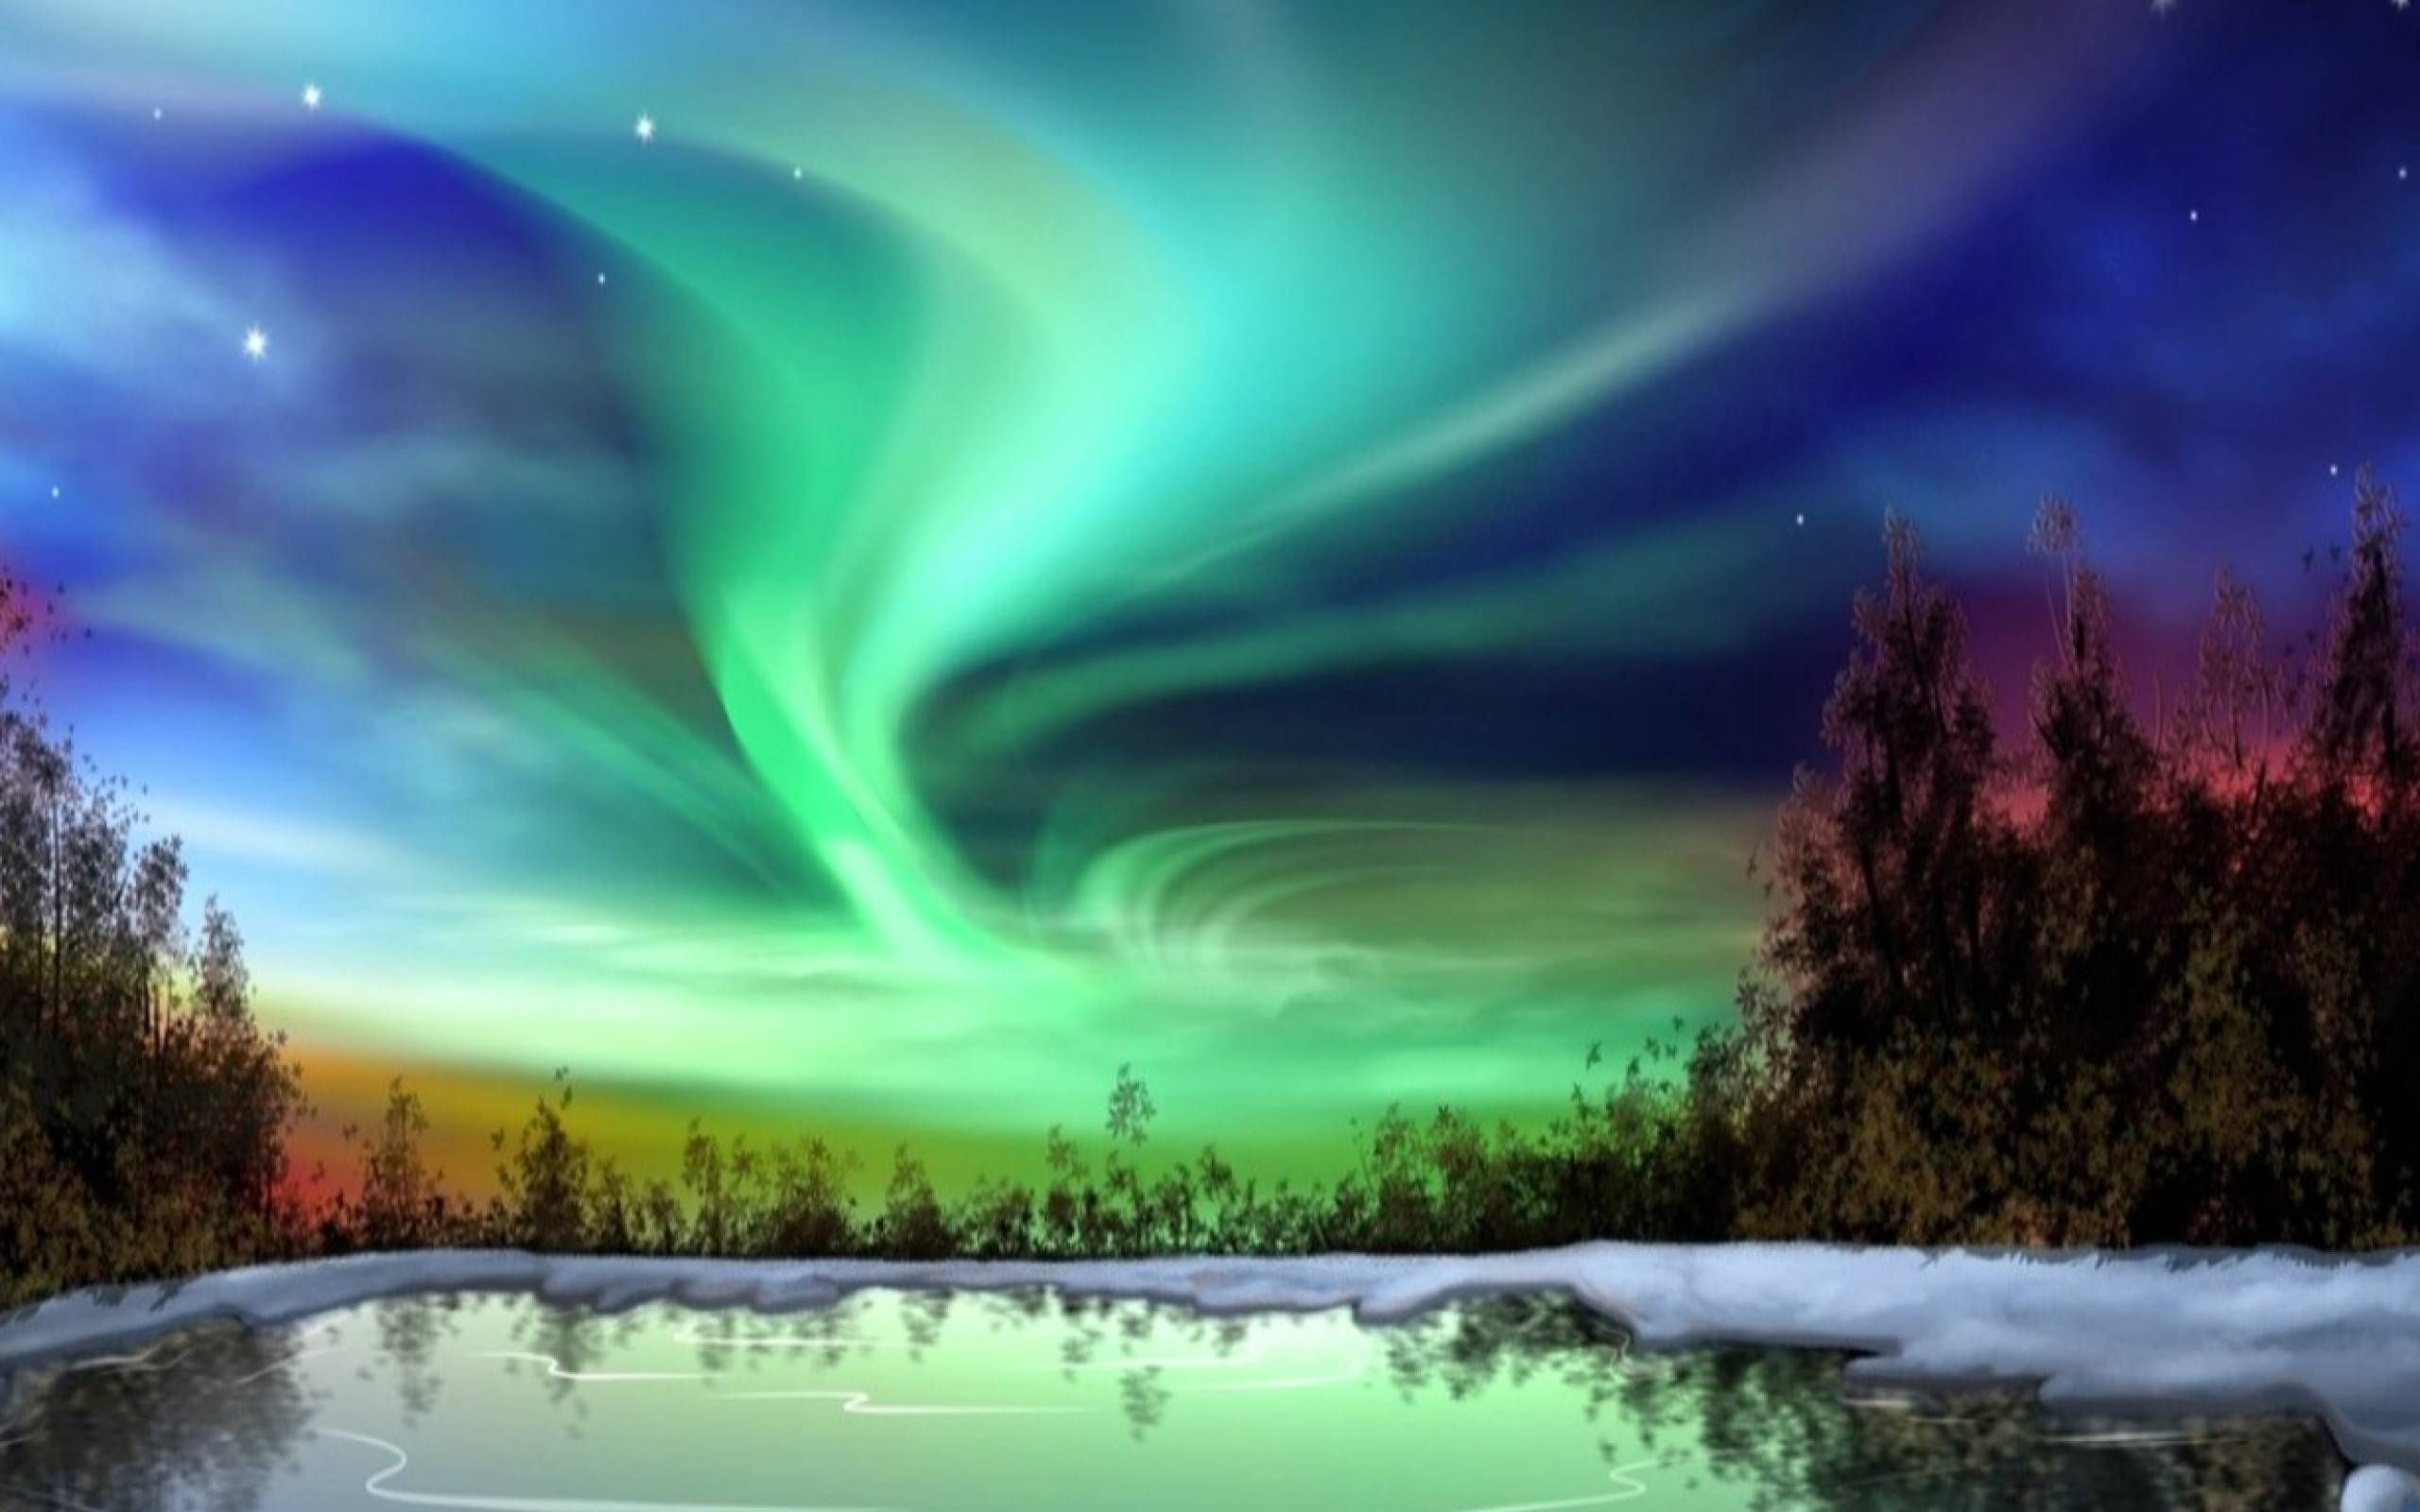 what causes the aurora borealis northern lights? dimensions